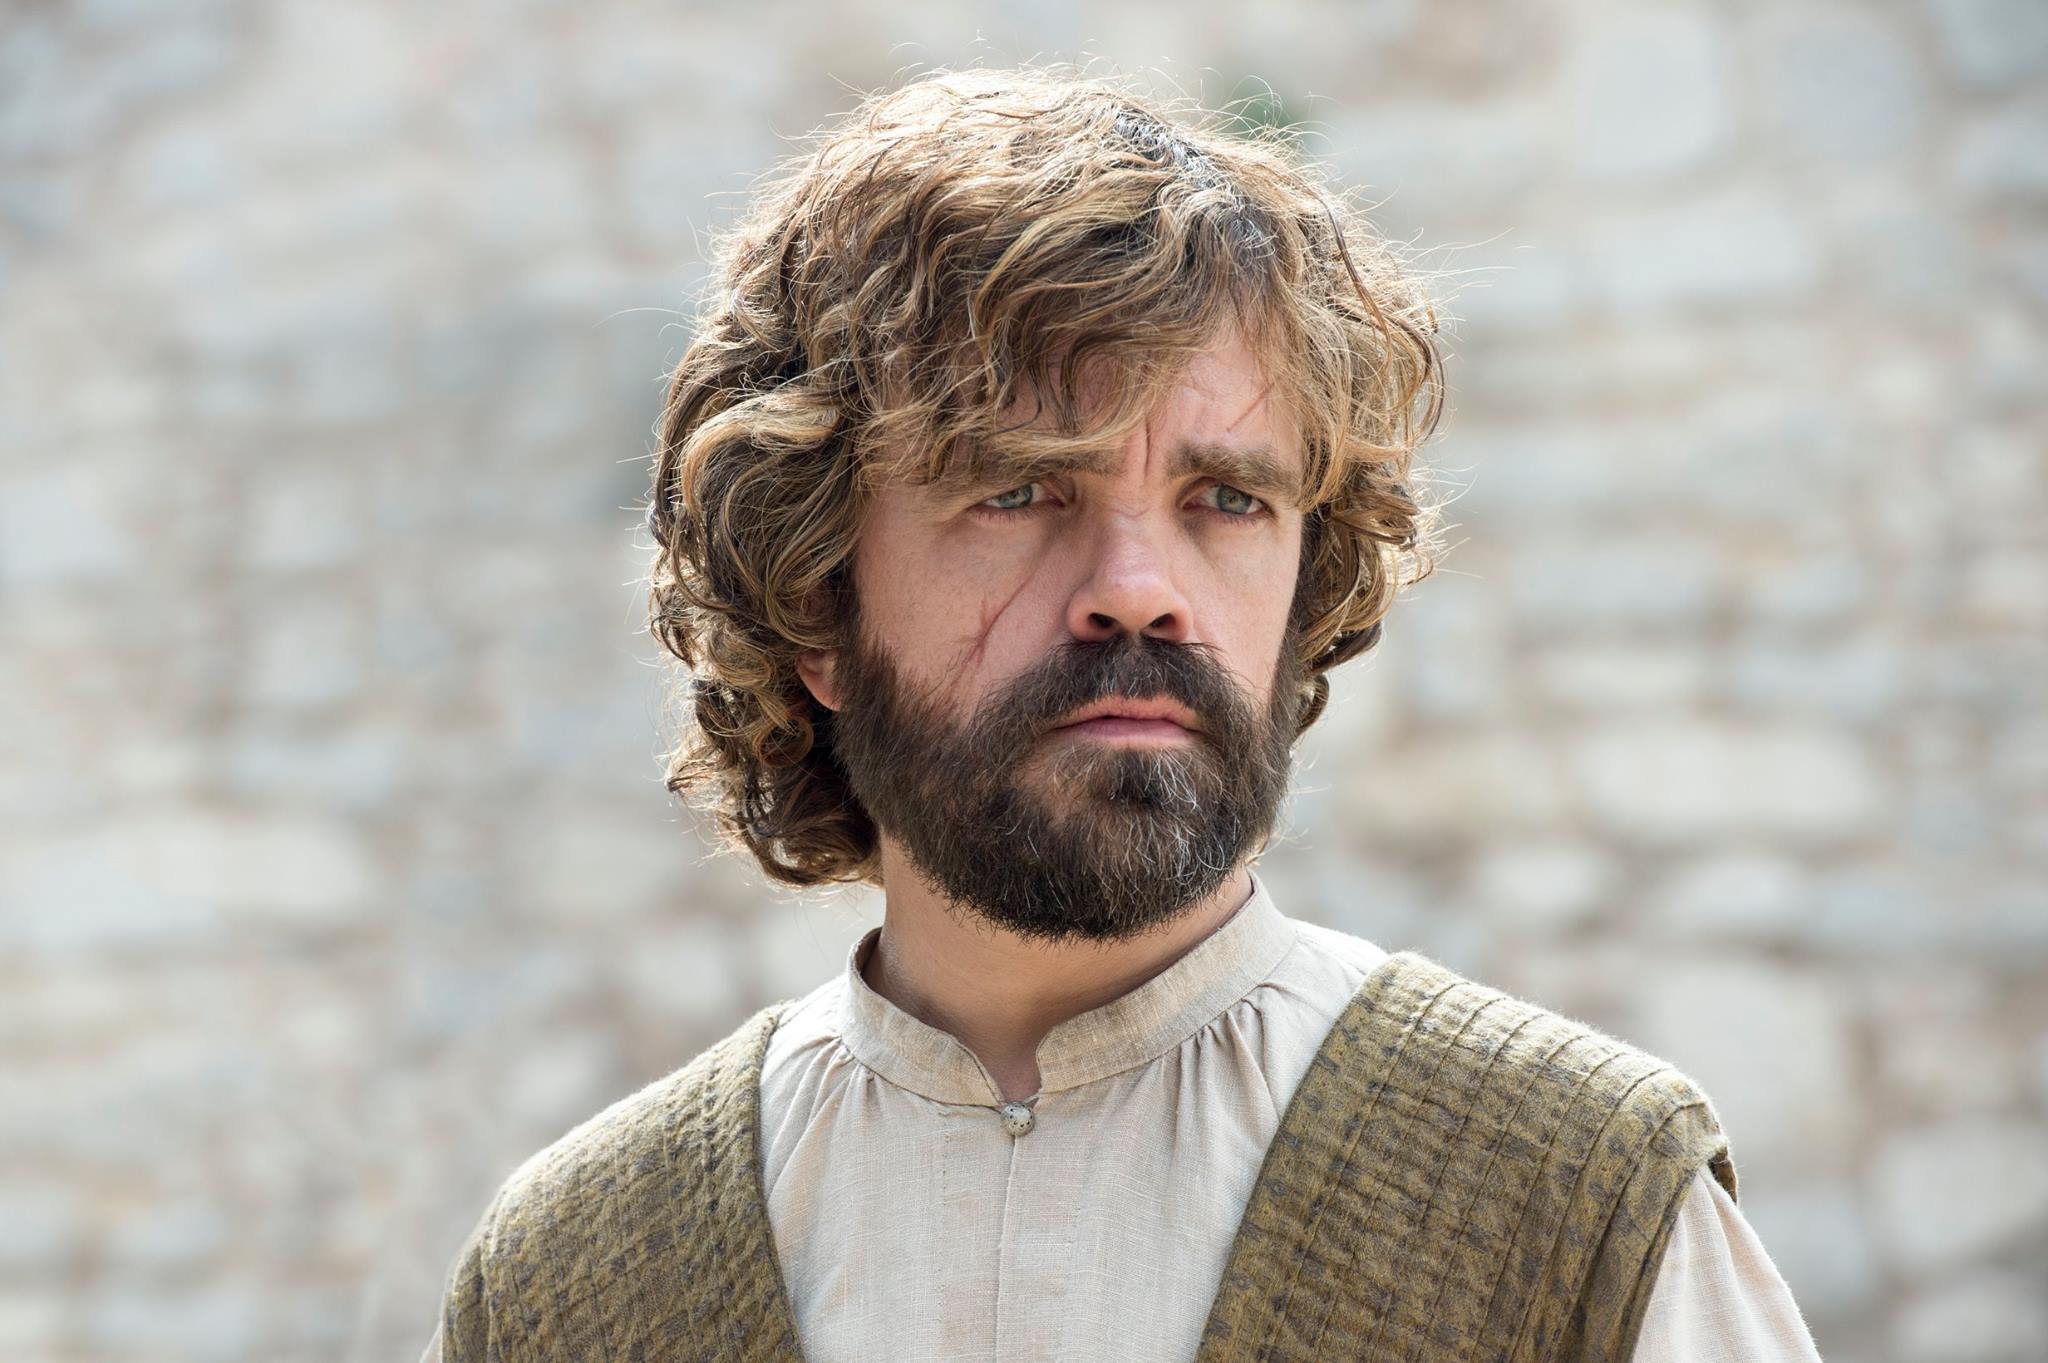 tyrion lannister mulherengo Game of Thrones